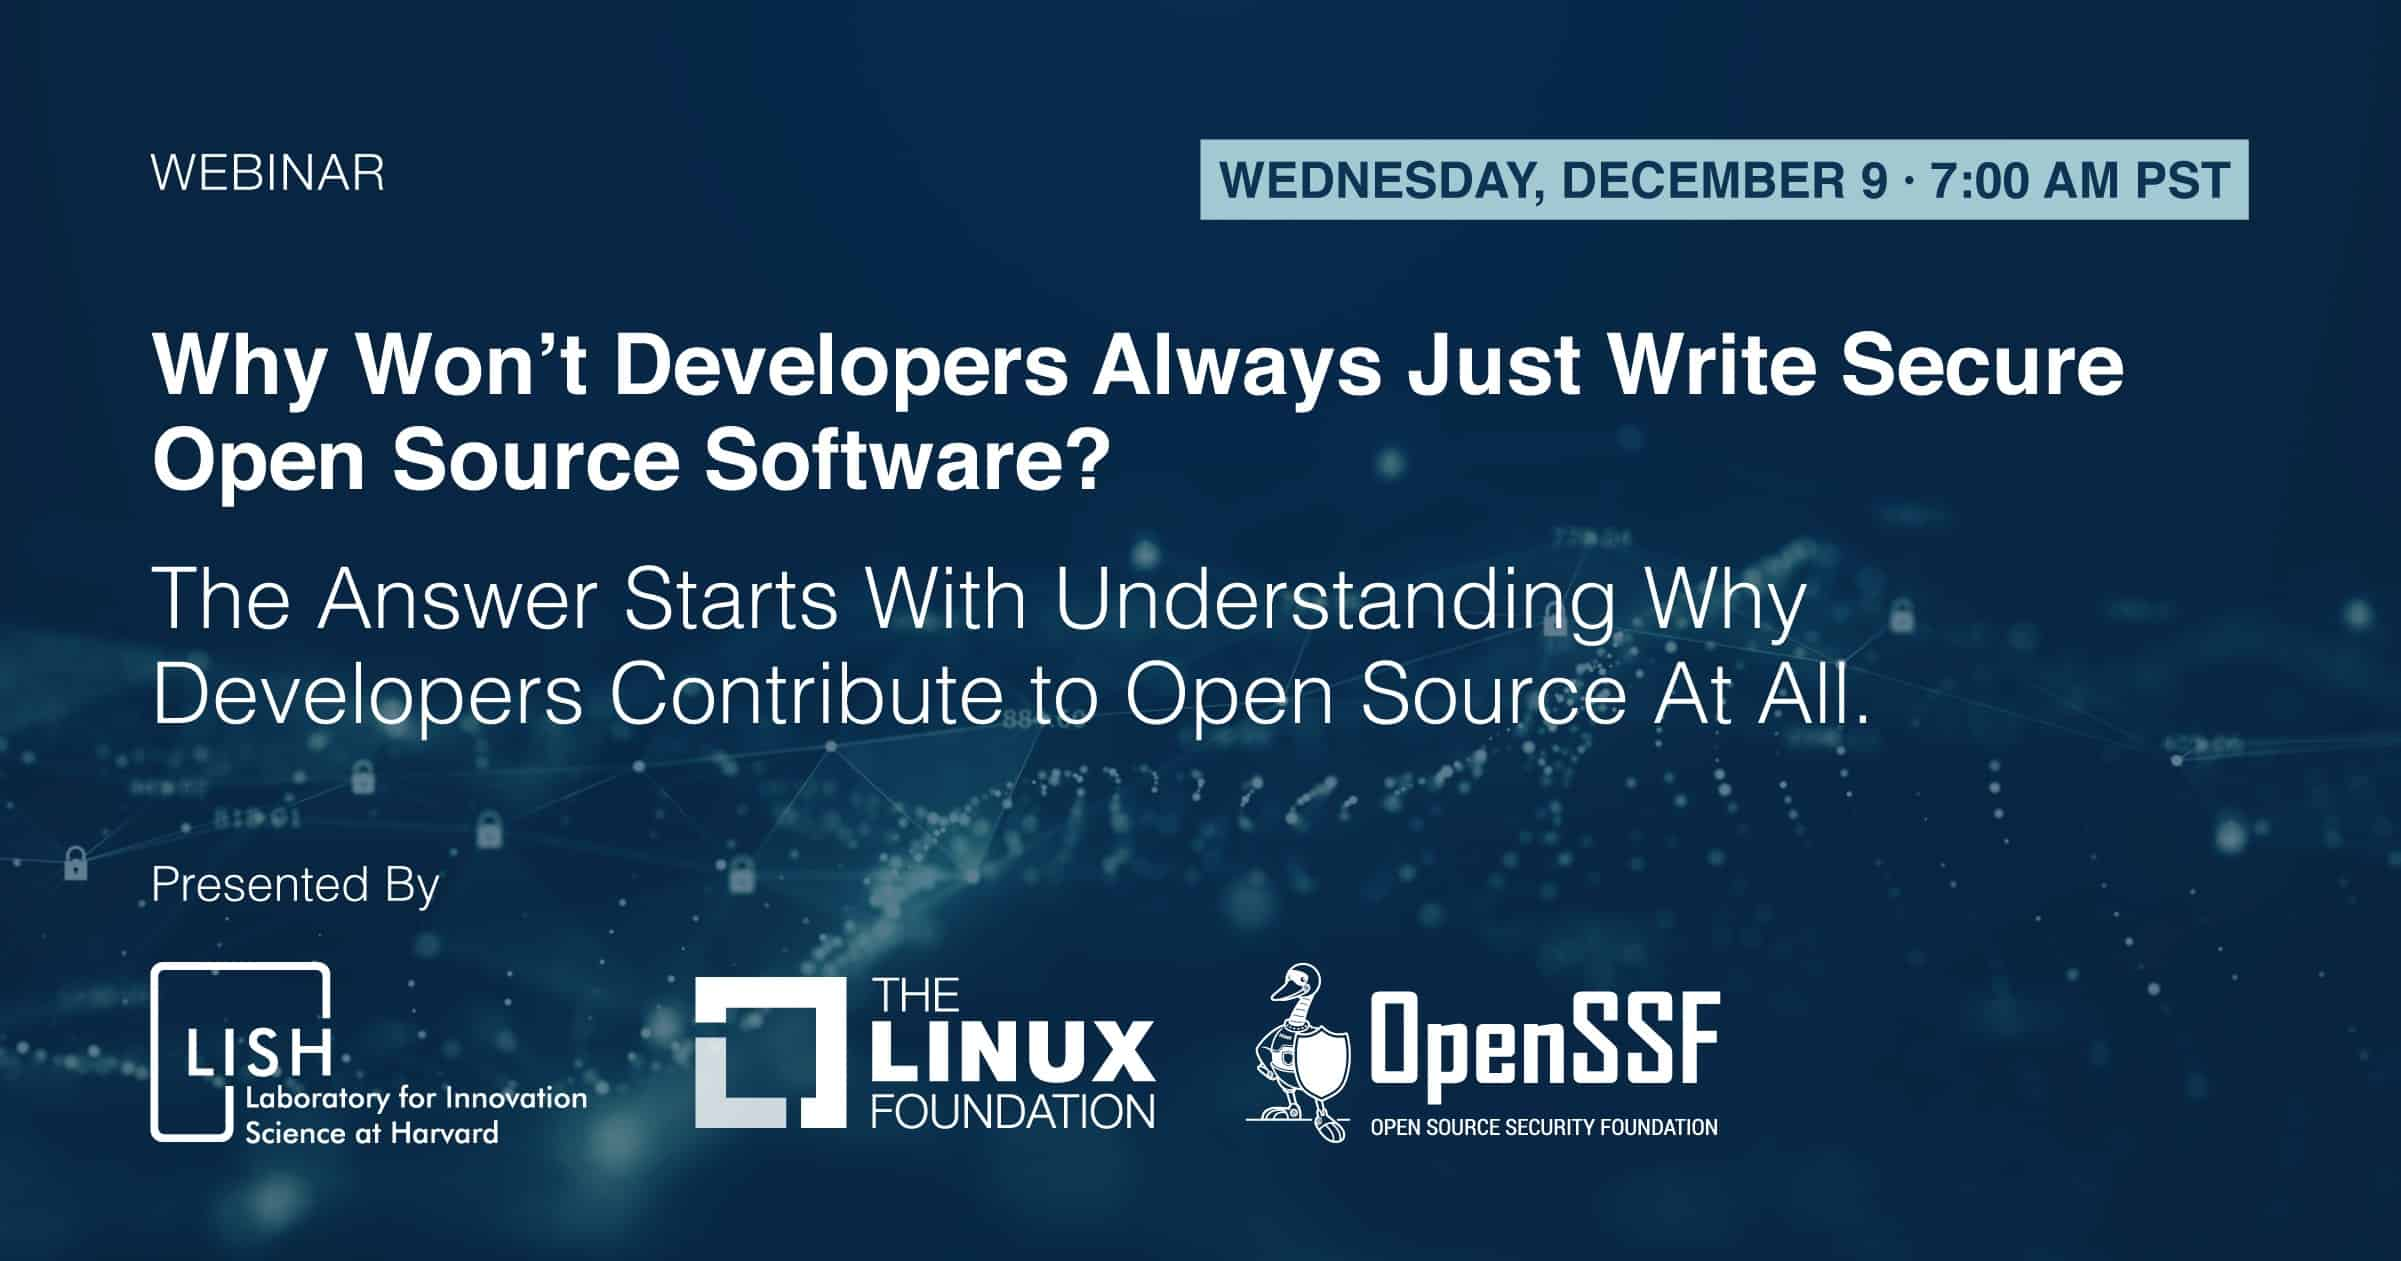 Webinar - Why Won't Developers Always Just Write Secure Open Source Software?